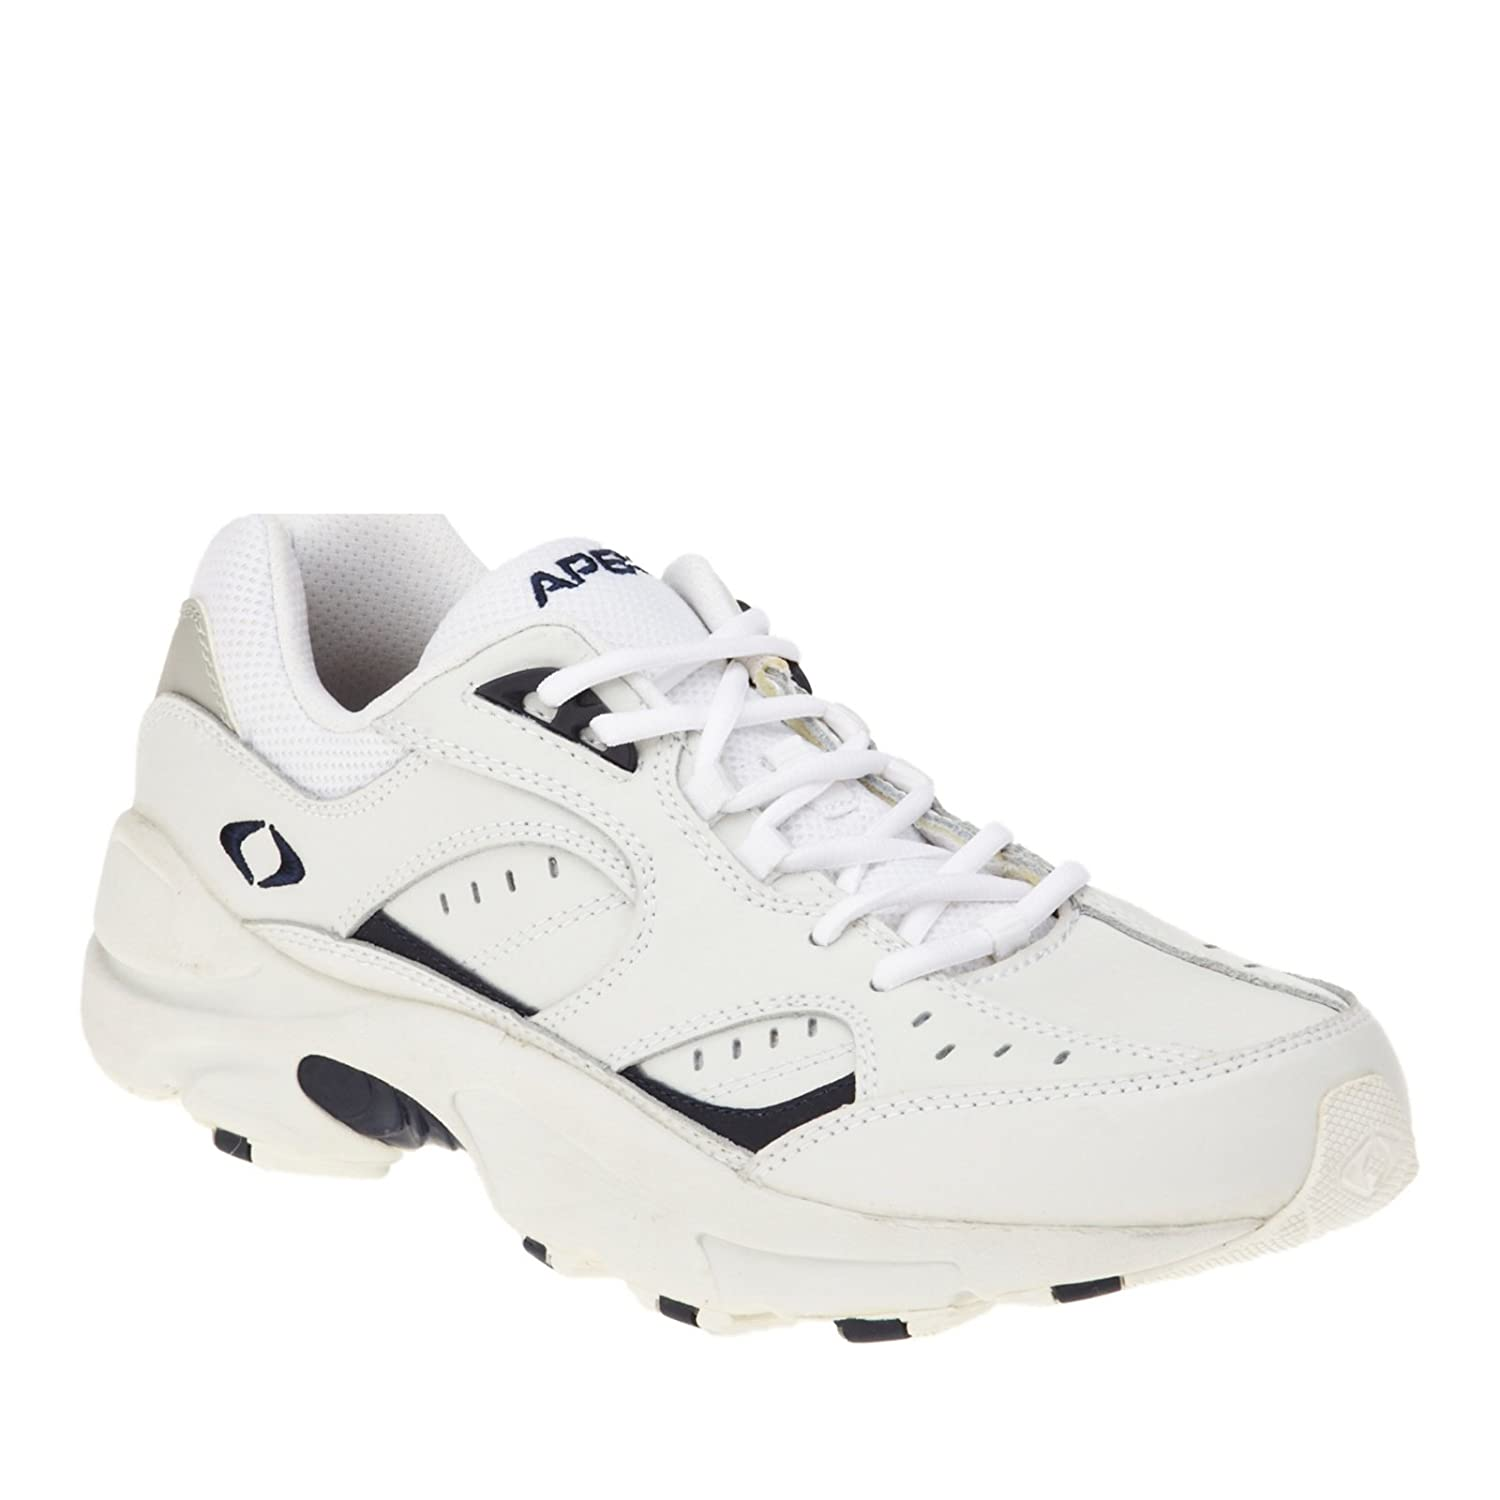 Apex Men's Walker - V Last Walking Shoe 11 W US|White